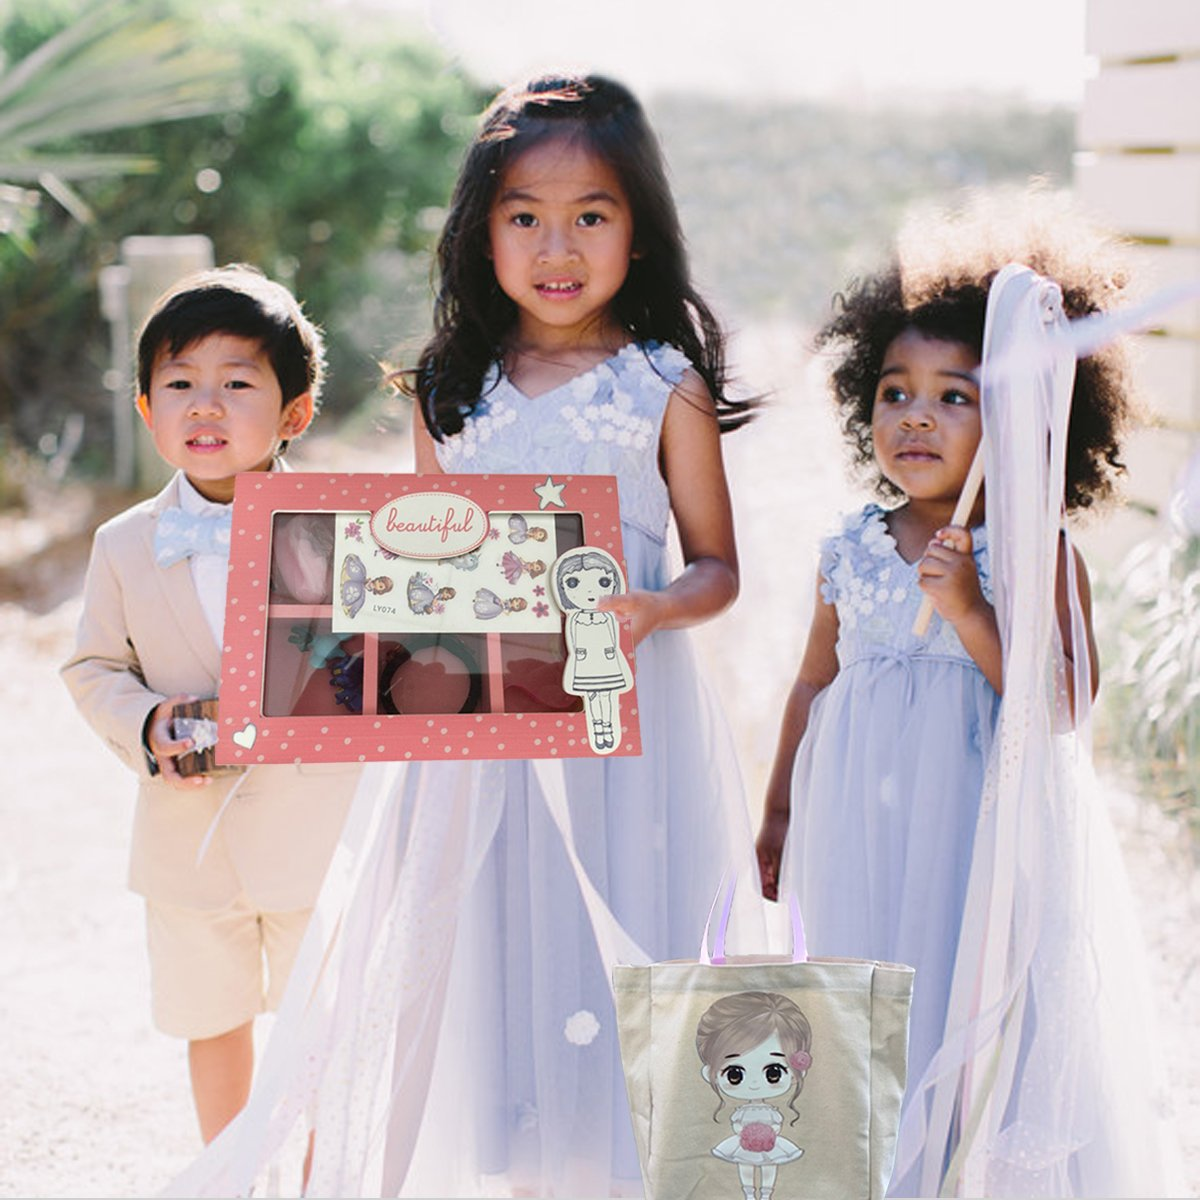 FLOWER Girl Wedding Birthday Christmas Favors Gift Tote Bag Cotton with Beautiful Wood Trinket Box full of toys favors girls jewelry headbands by Global Huntress (Image #5)